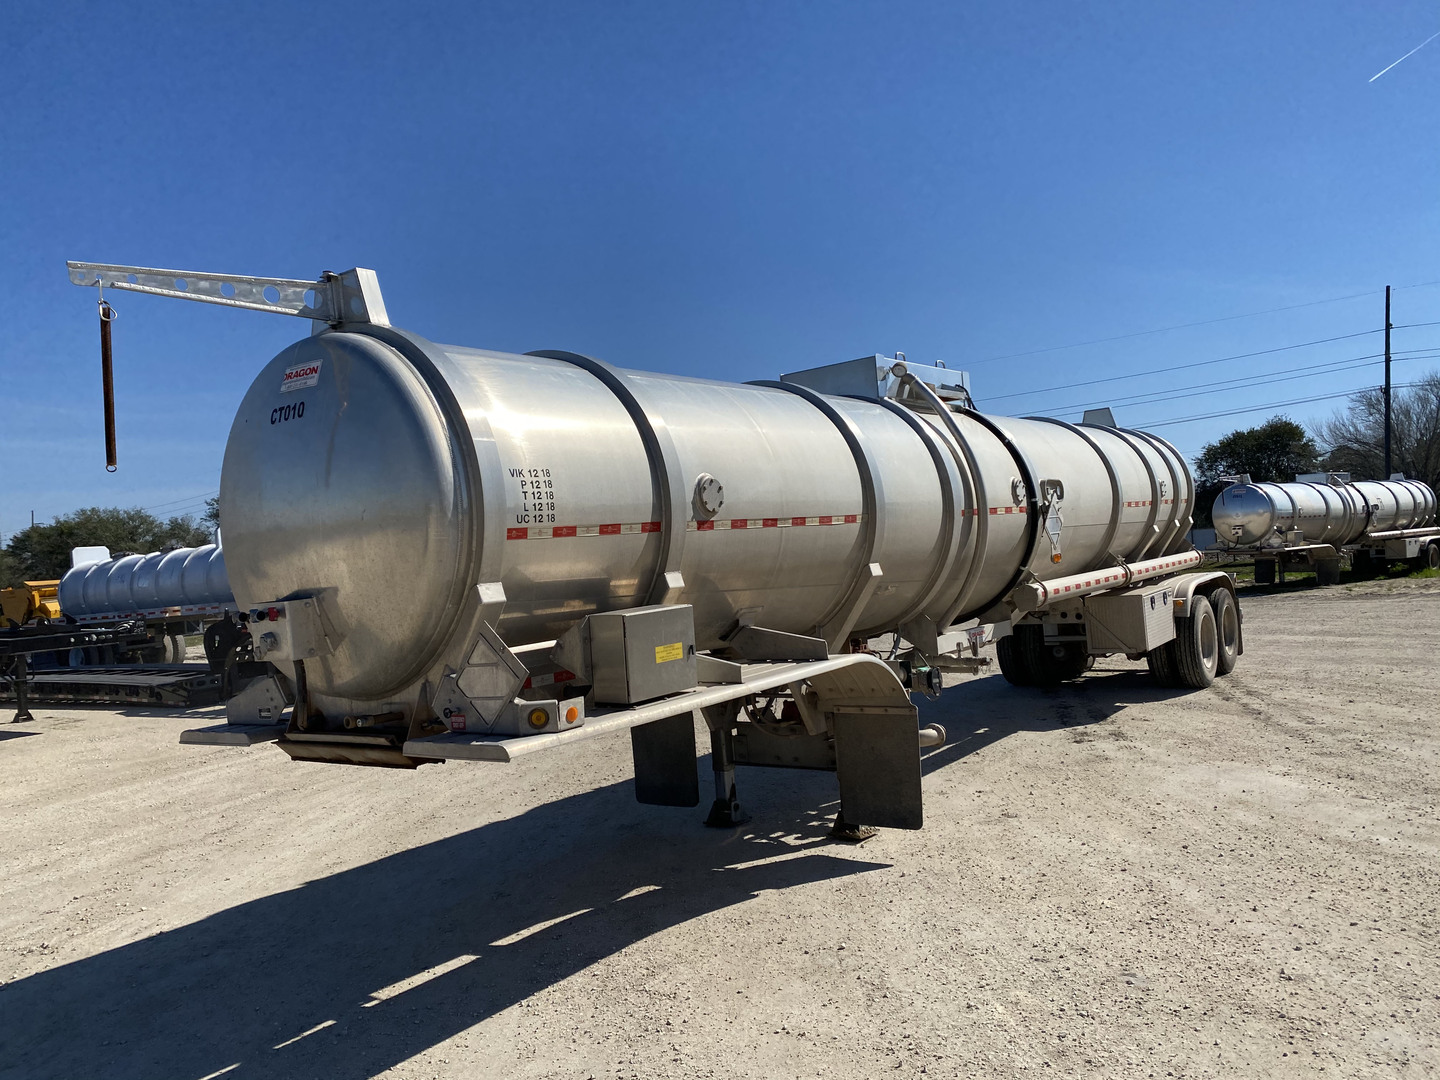 2019 Dragon 200 BBL T/A Aluminum Crude Oil Trailer